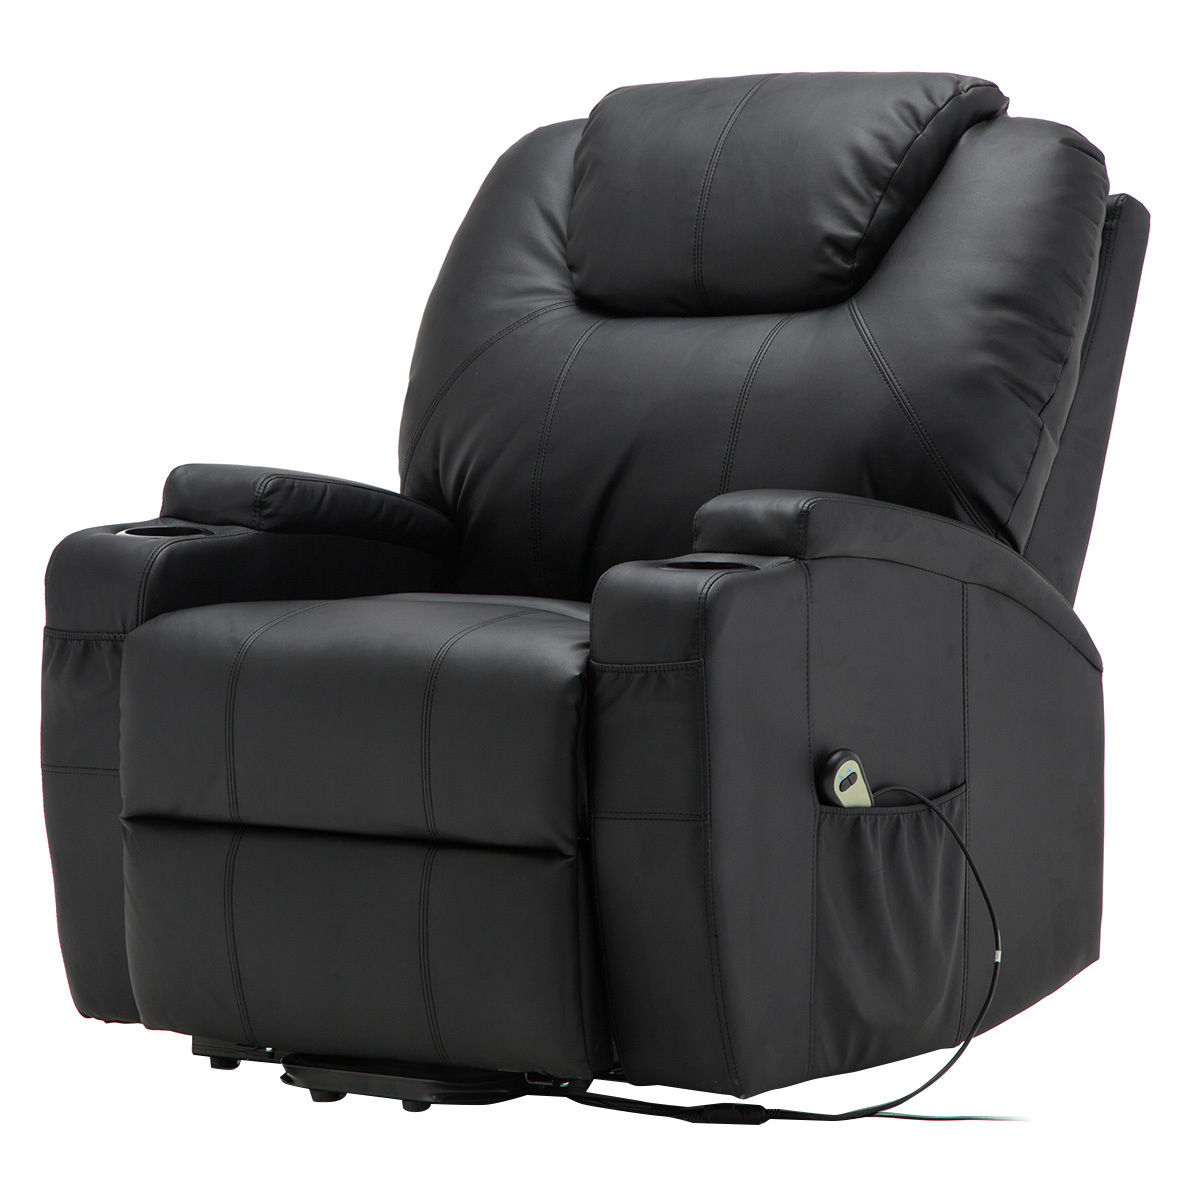 Giantex Electric Lift Power Recliner Chair Heated Massage Sofa Throughout Preferred Sofa Chair Recliner (View 7 of 20)